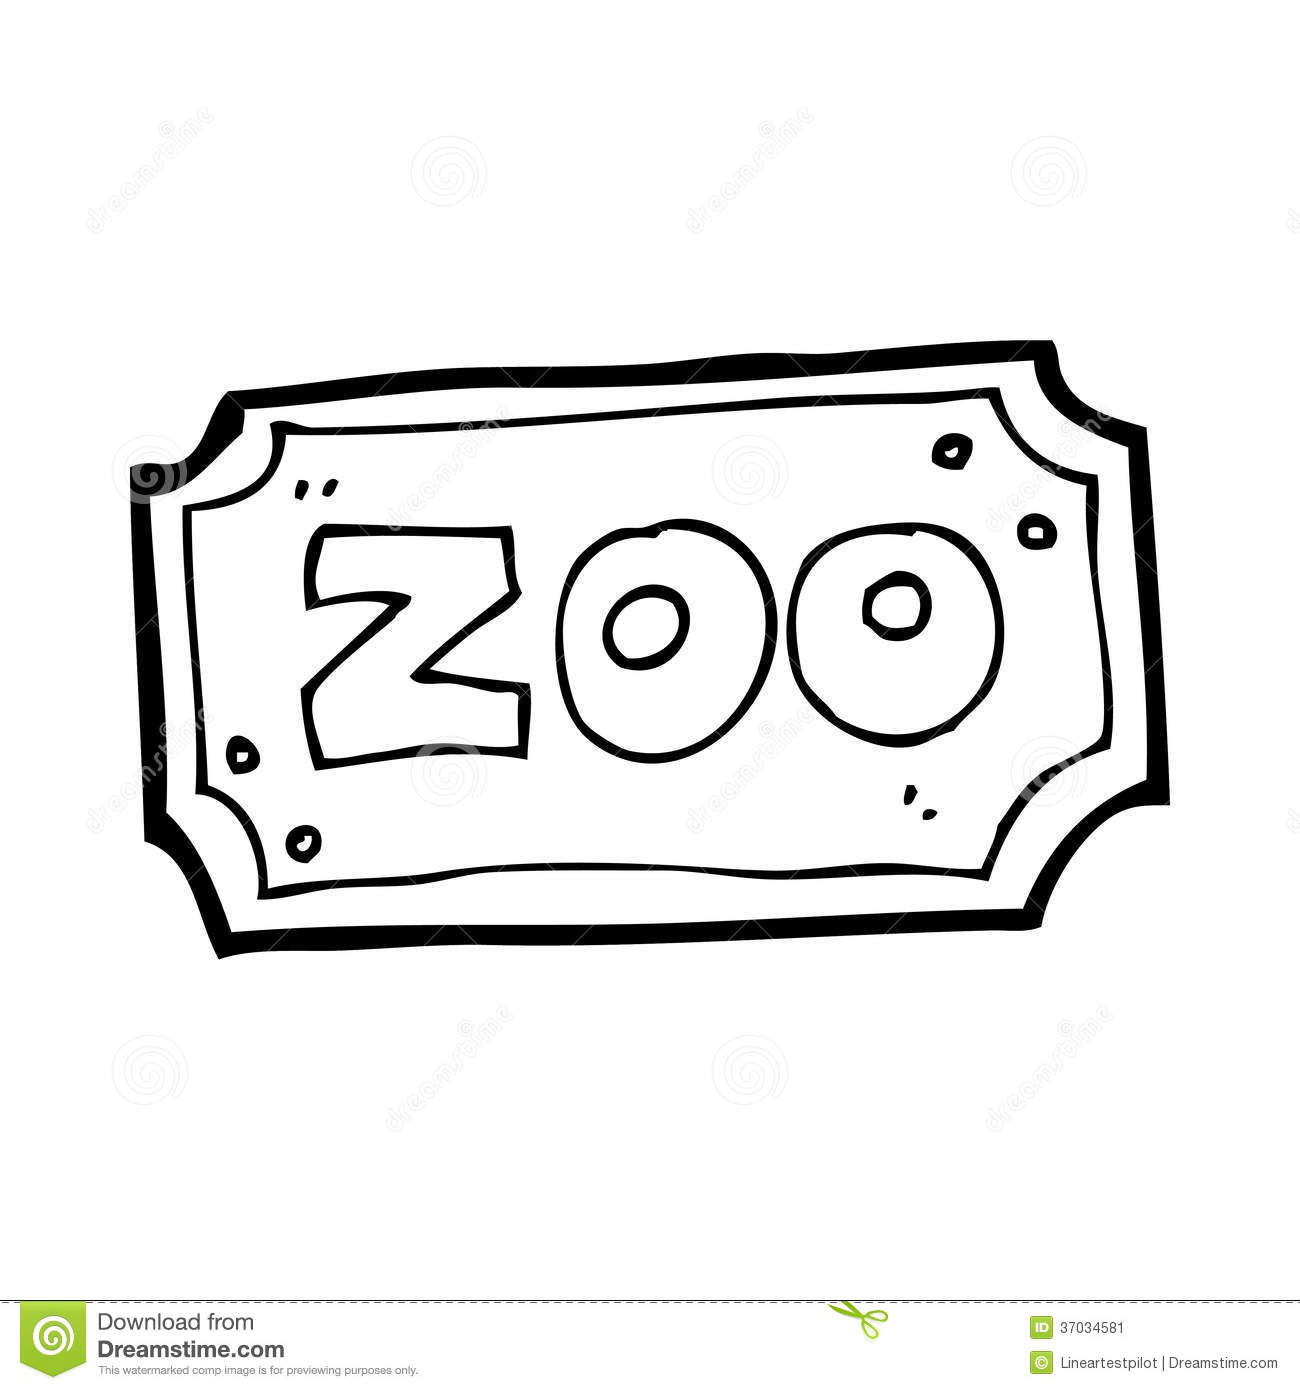 Zoo Entrance Clip Art Black And White Zoo Entrance Clip ArtZoo Clip Art Black And White